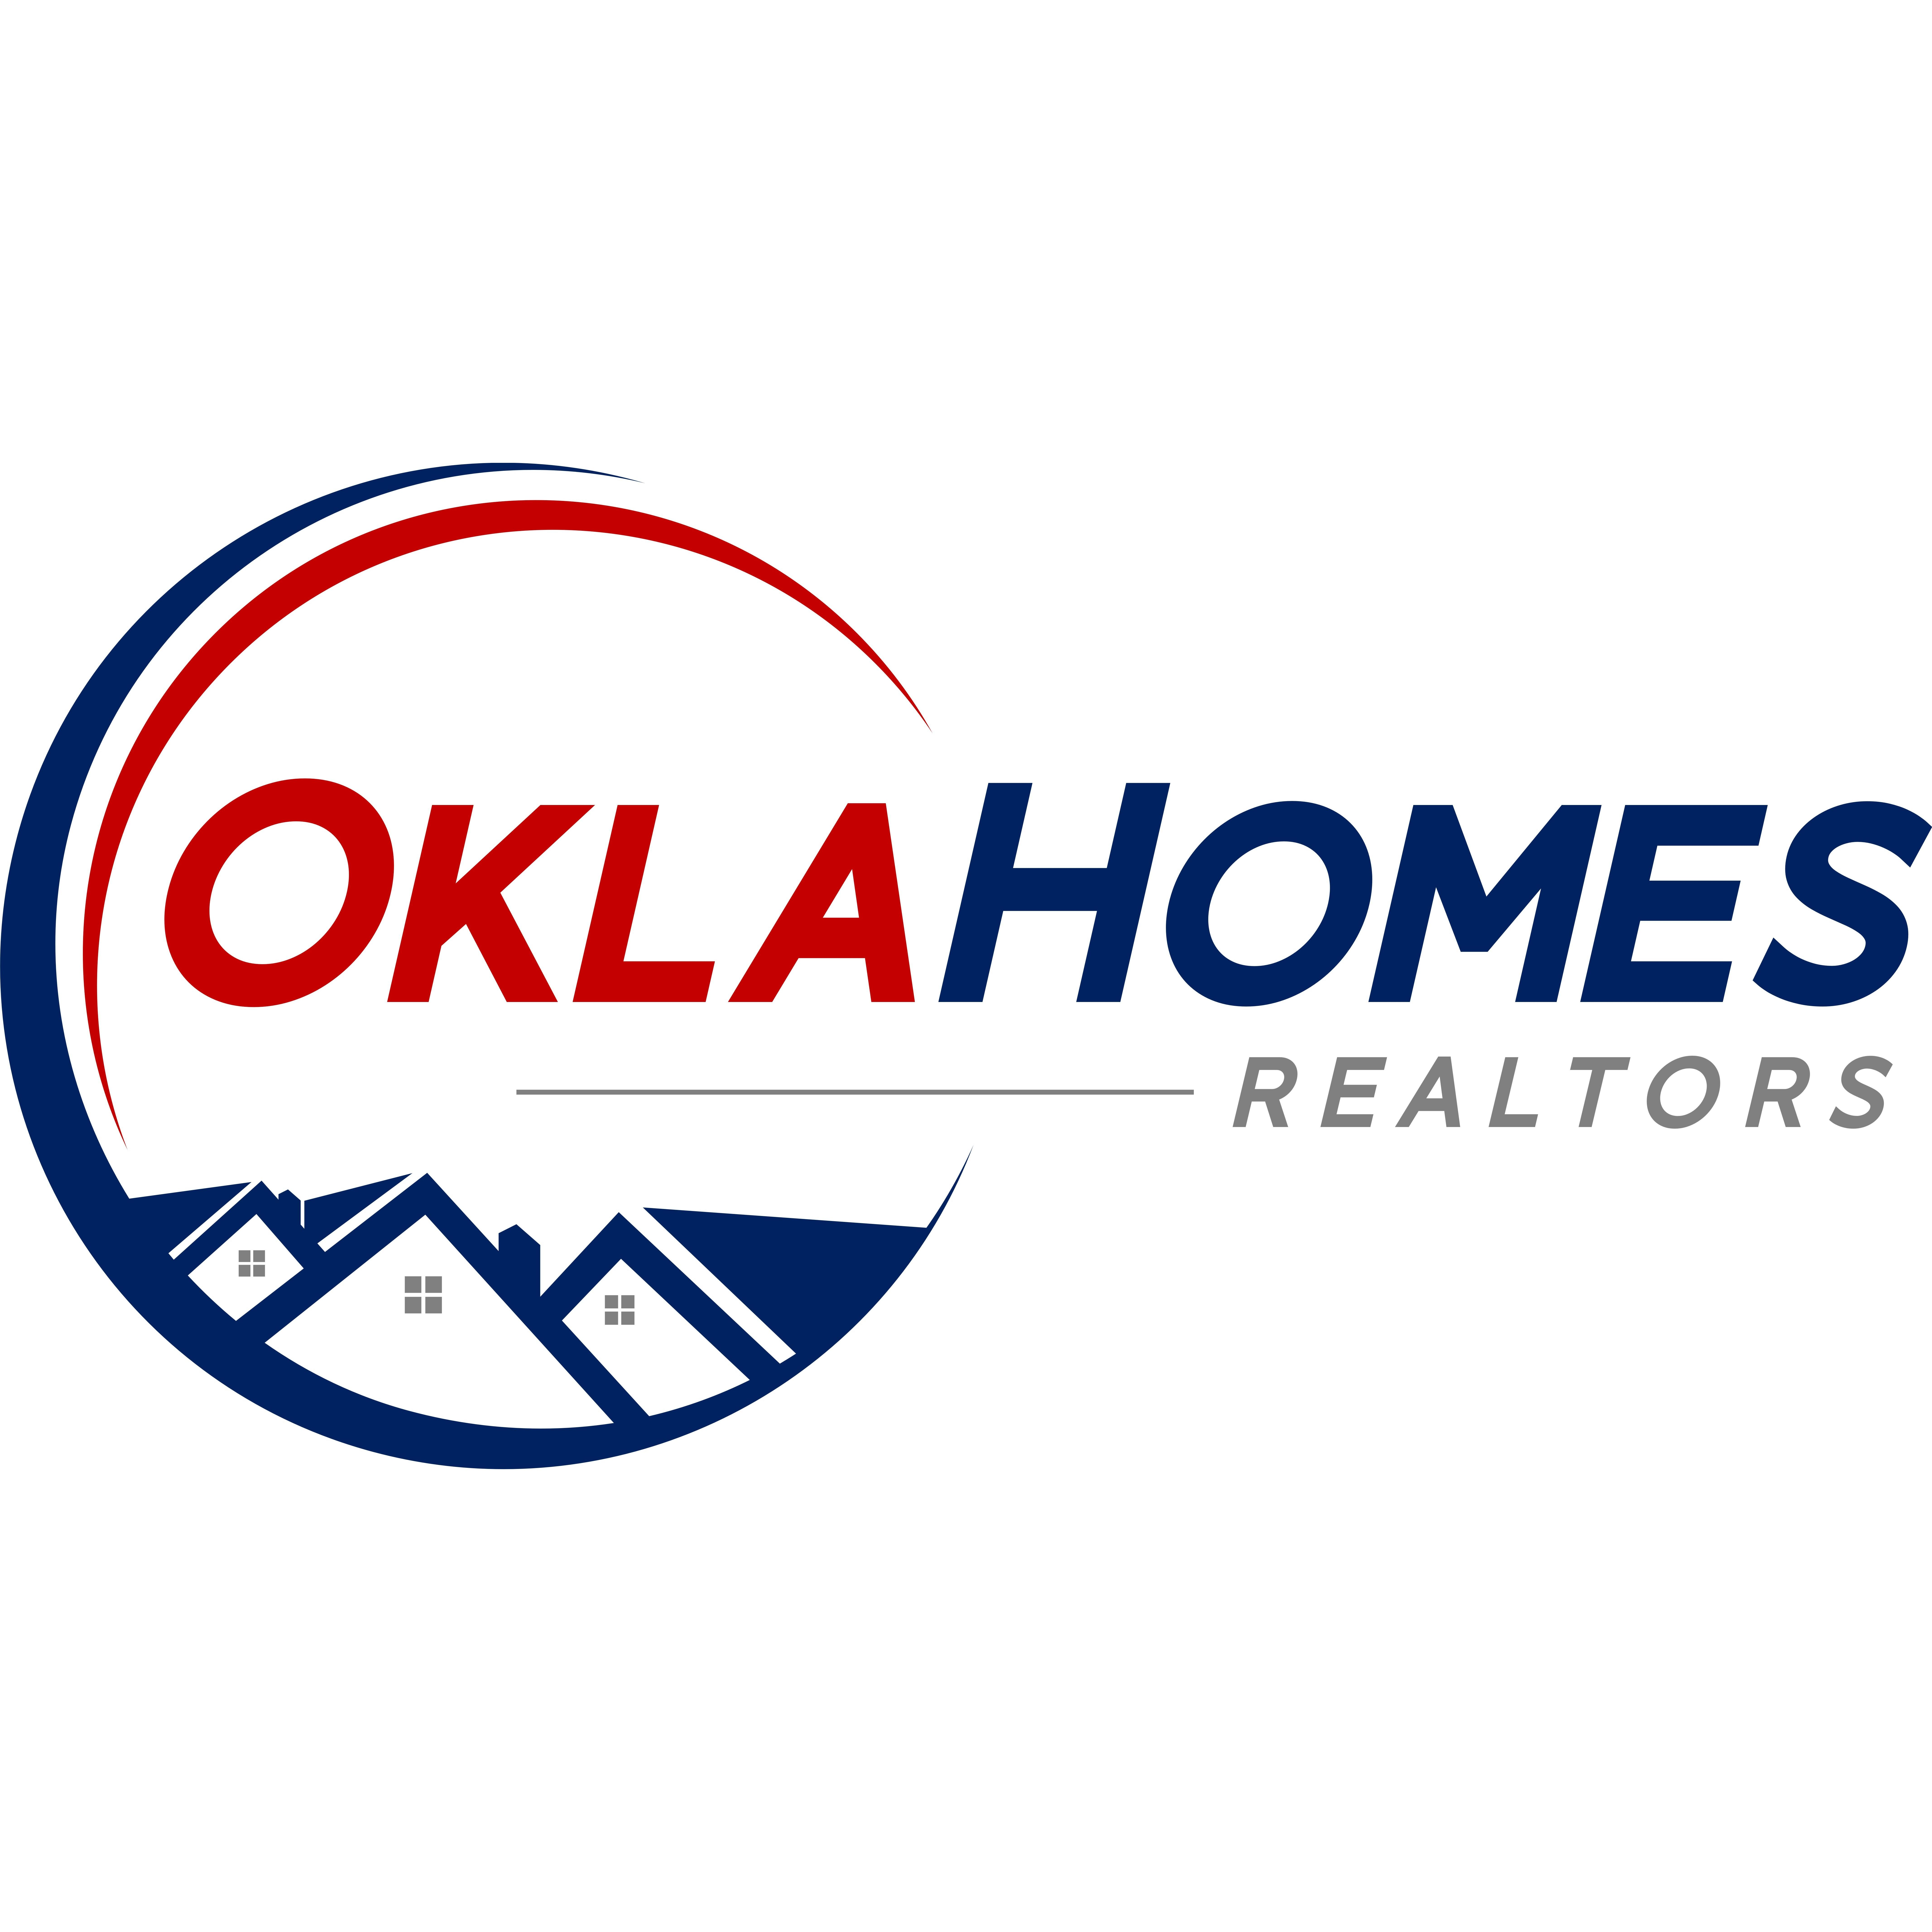 Russell Guilfoyle OklaHomes Realty Inc